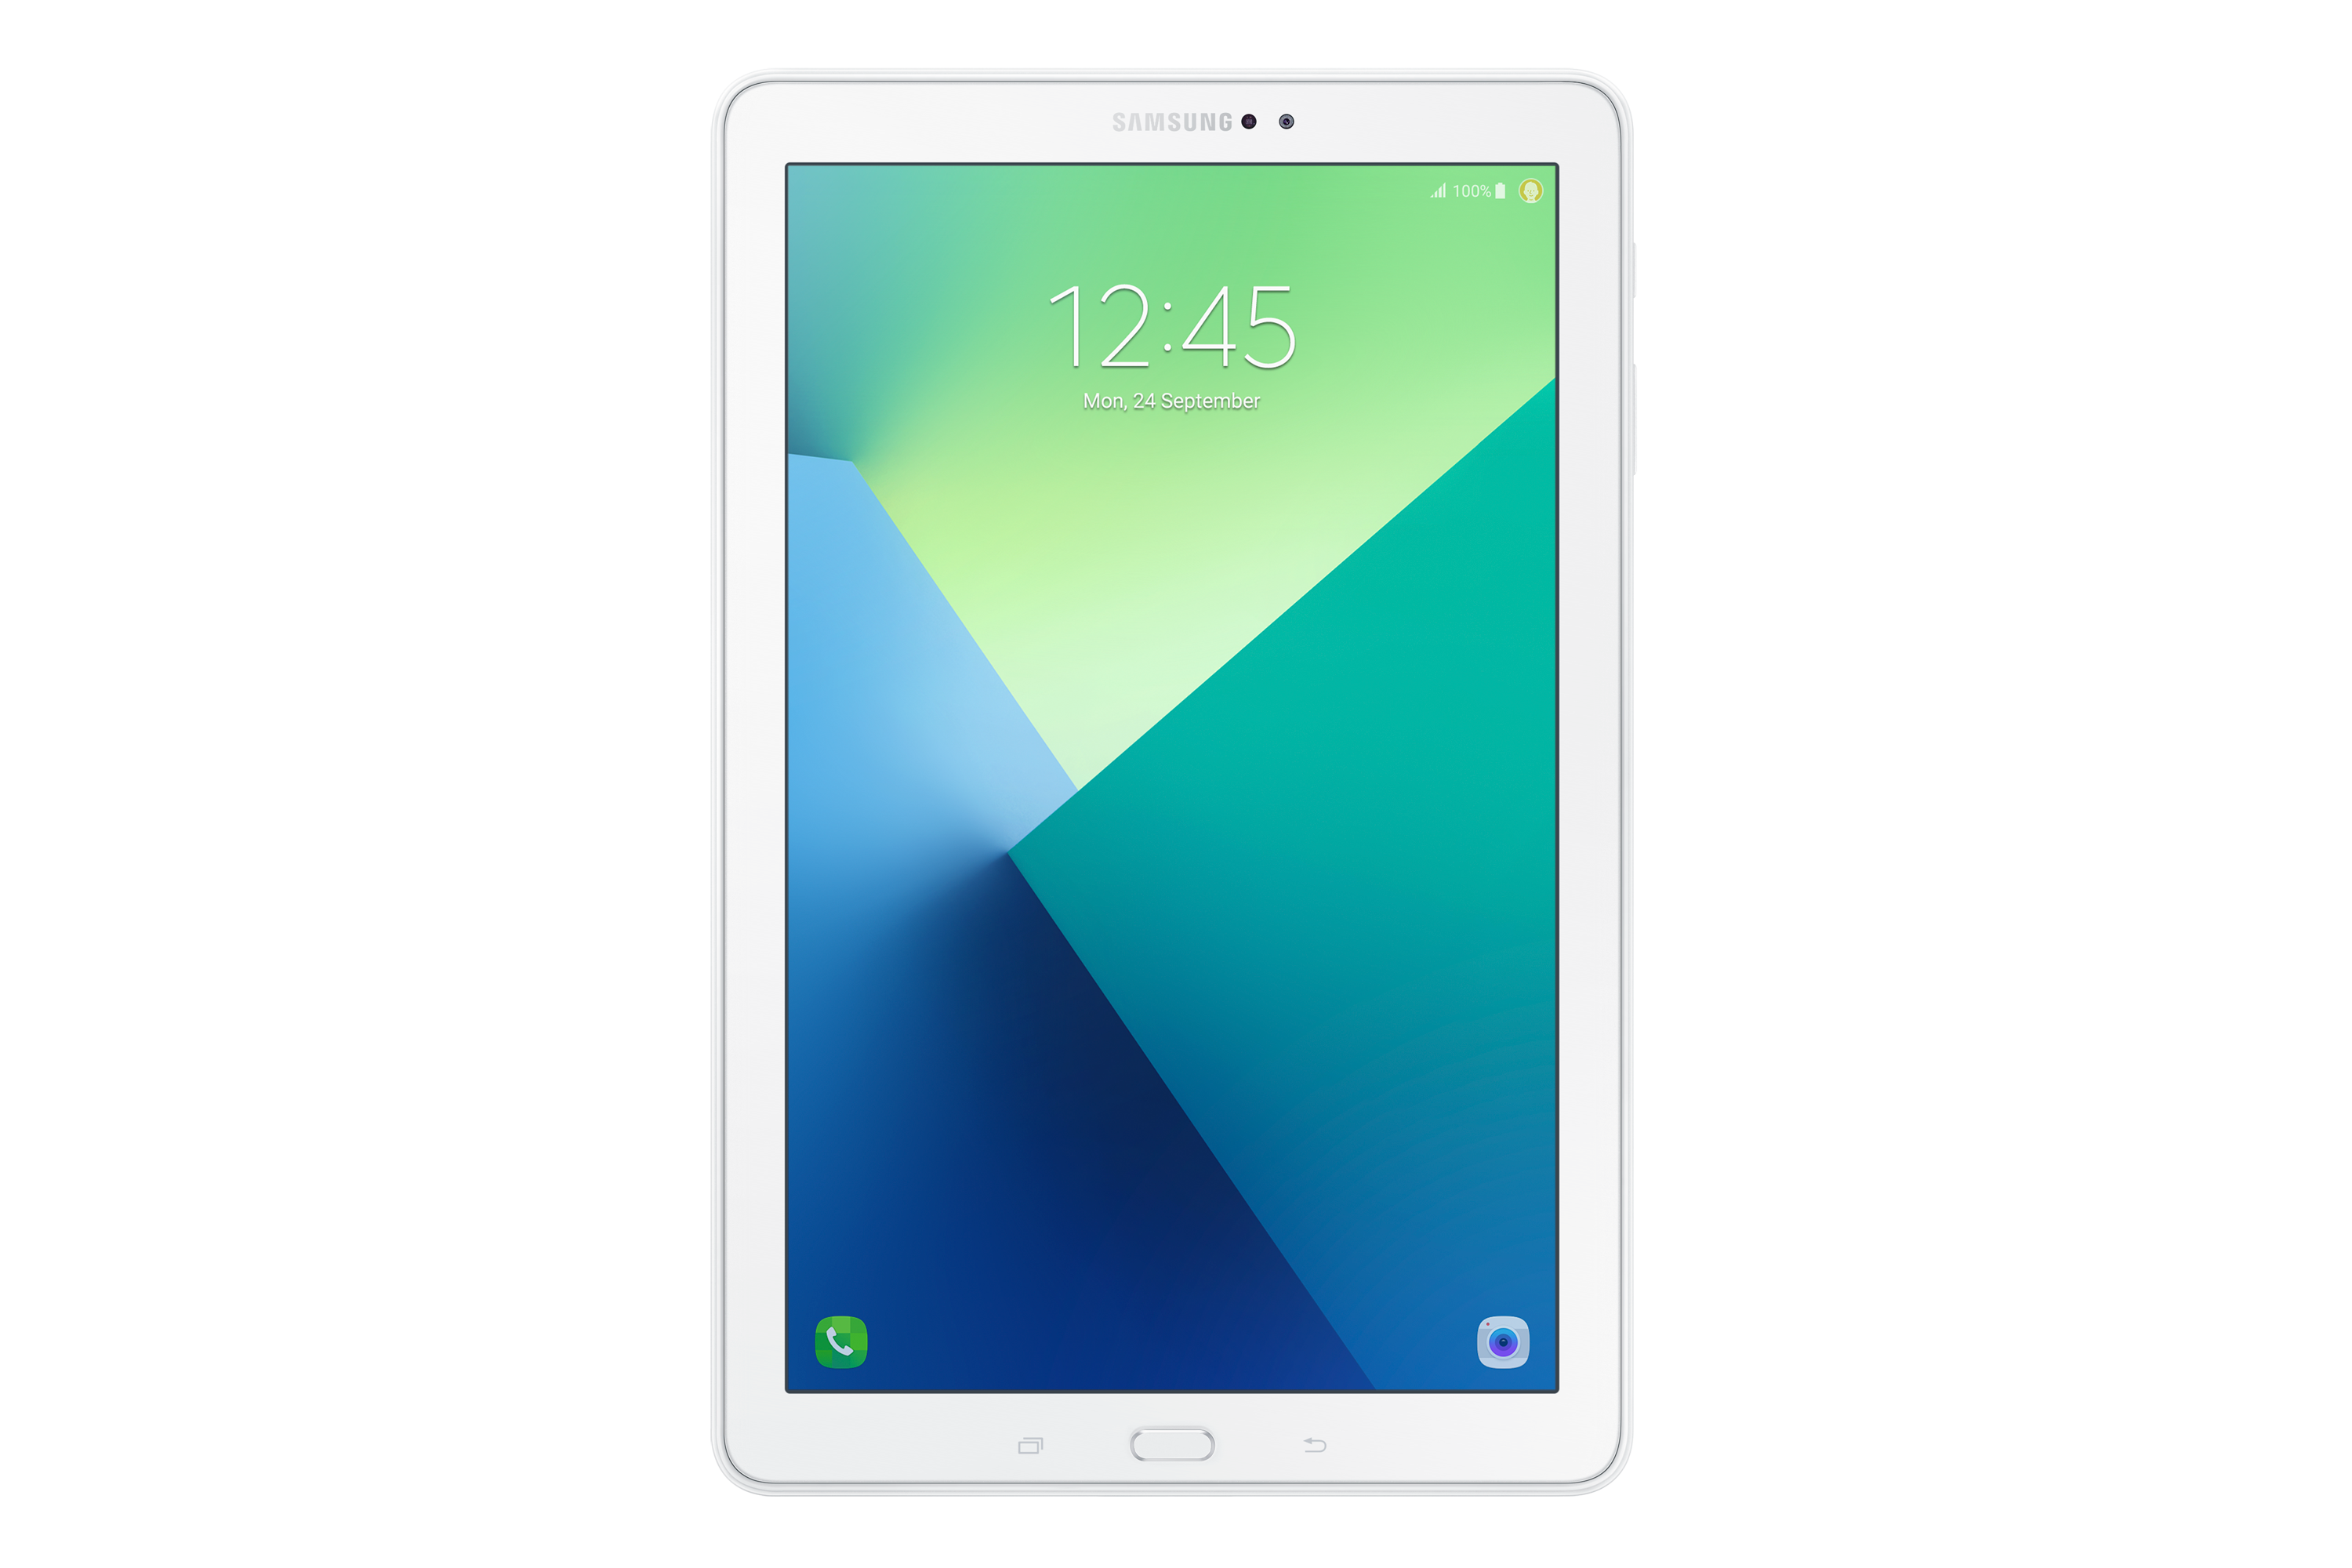 galaxy tab a 2016 10 1 lte with s pen samsung support malaysia rh samsung com Save Email Samsung Galaxy Tablet 10.1 Samsung Galaxy Phone Owners Manual